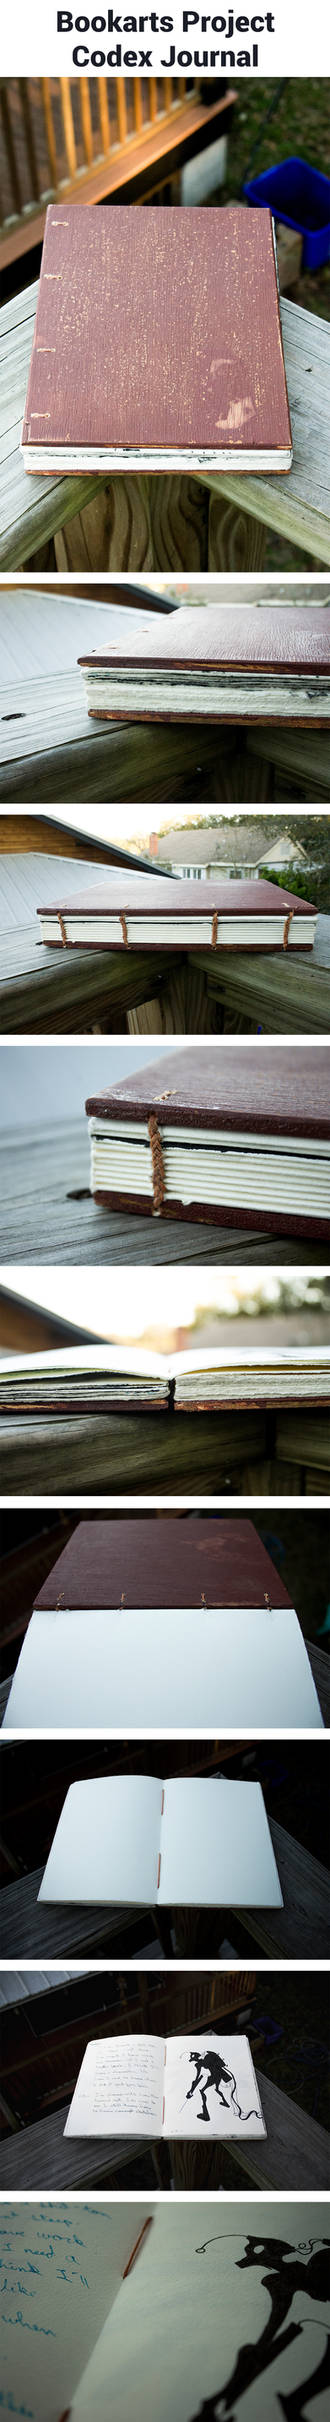 Bookarts Project: Codex Journal